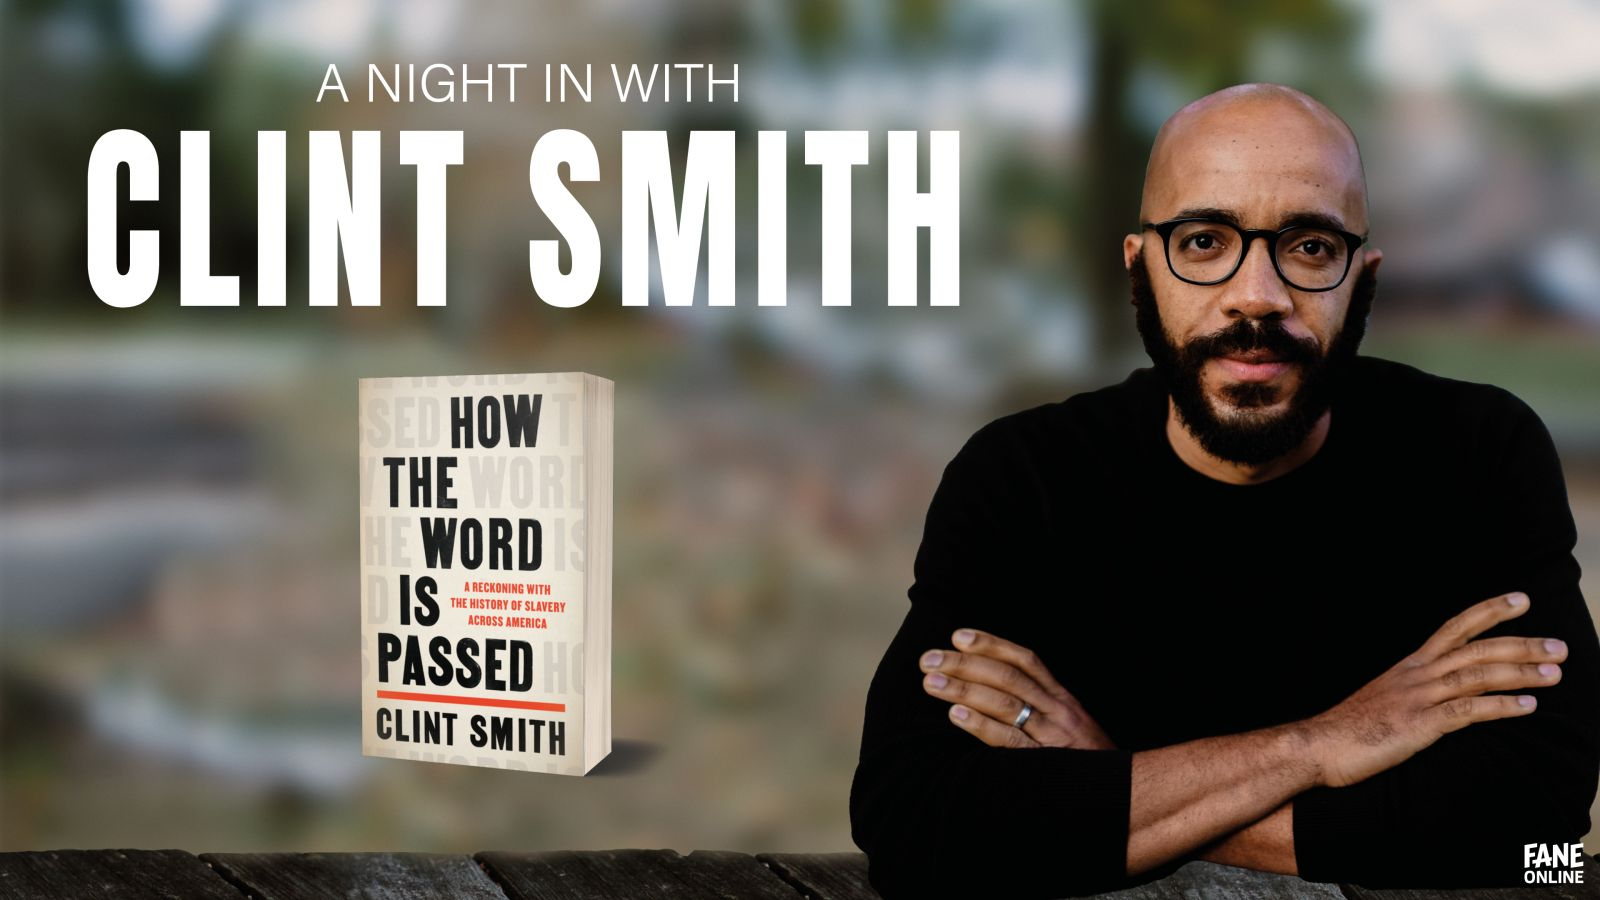 A Night In With Clint Smith